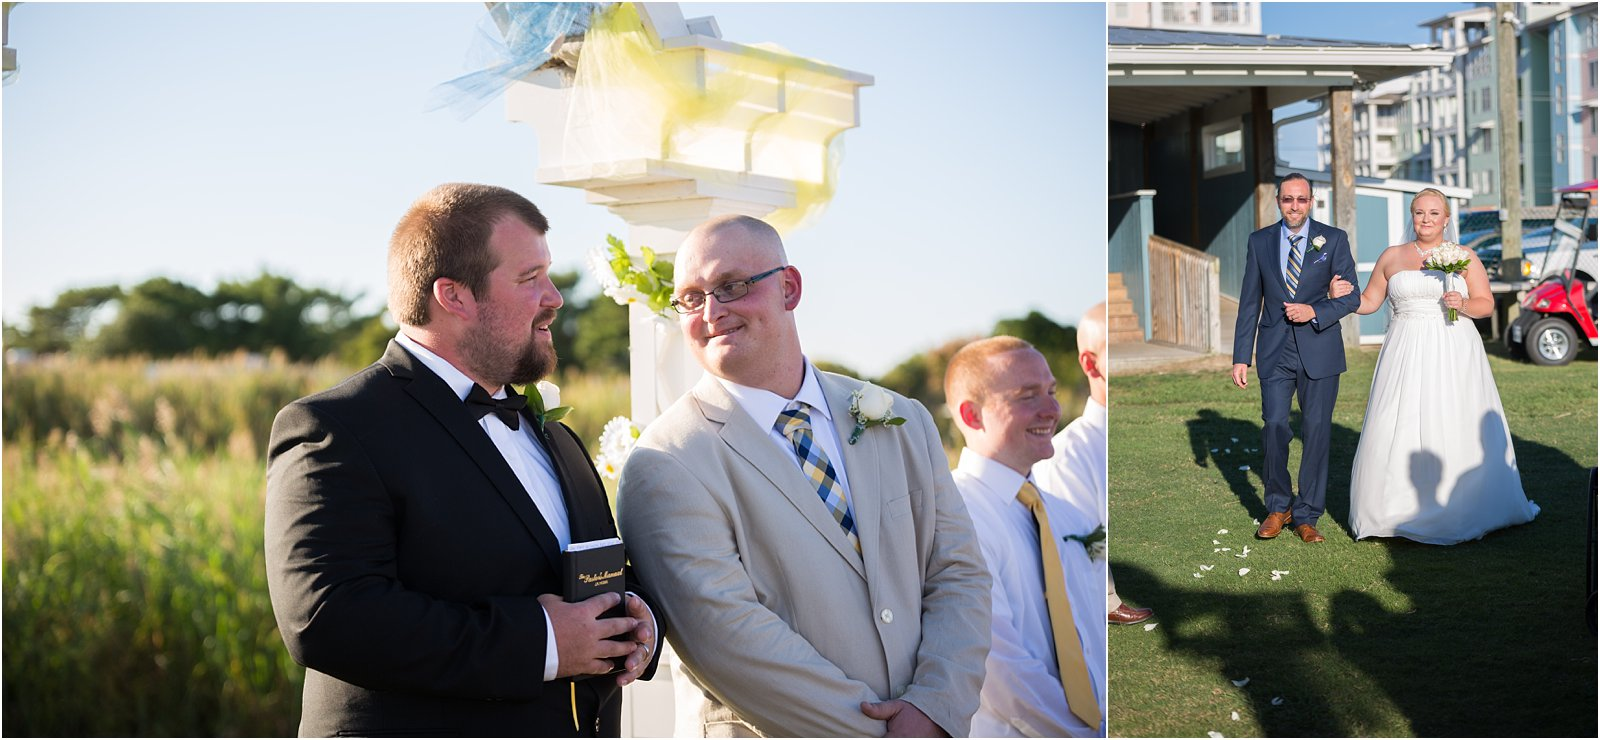 jessica_ryan_photography_baja_restaurant_wedding_sandbridge_virginia_beach_photographer_0447